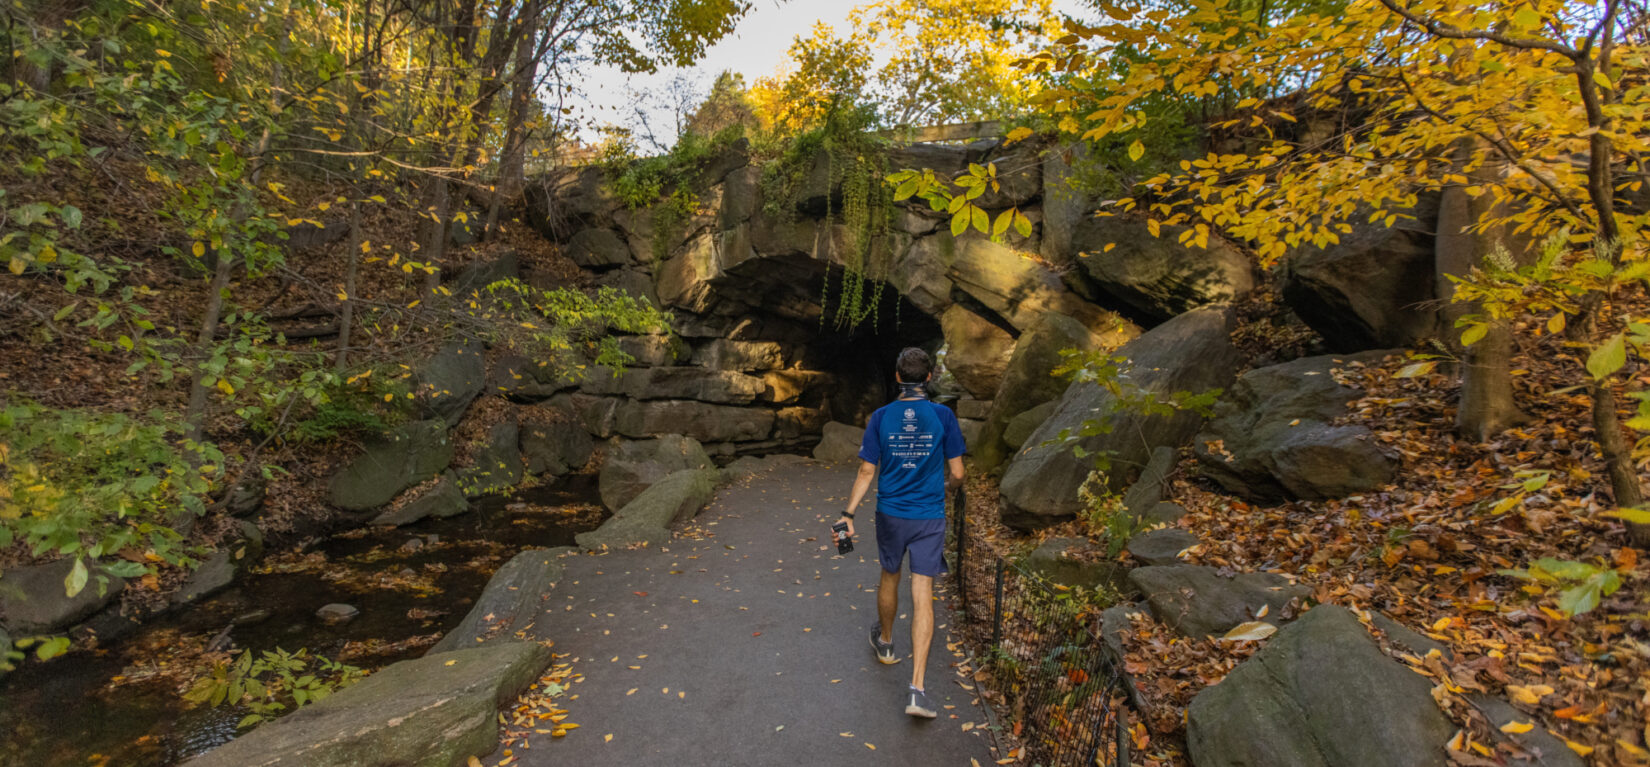 A hiker approaches the Huddlestone Arch in autumn